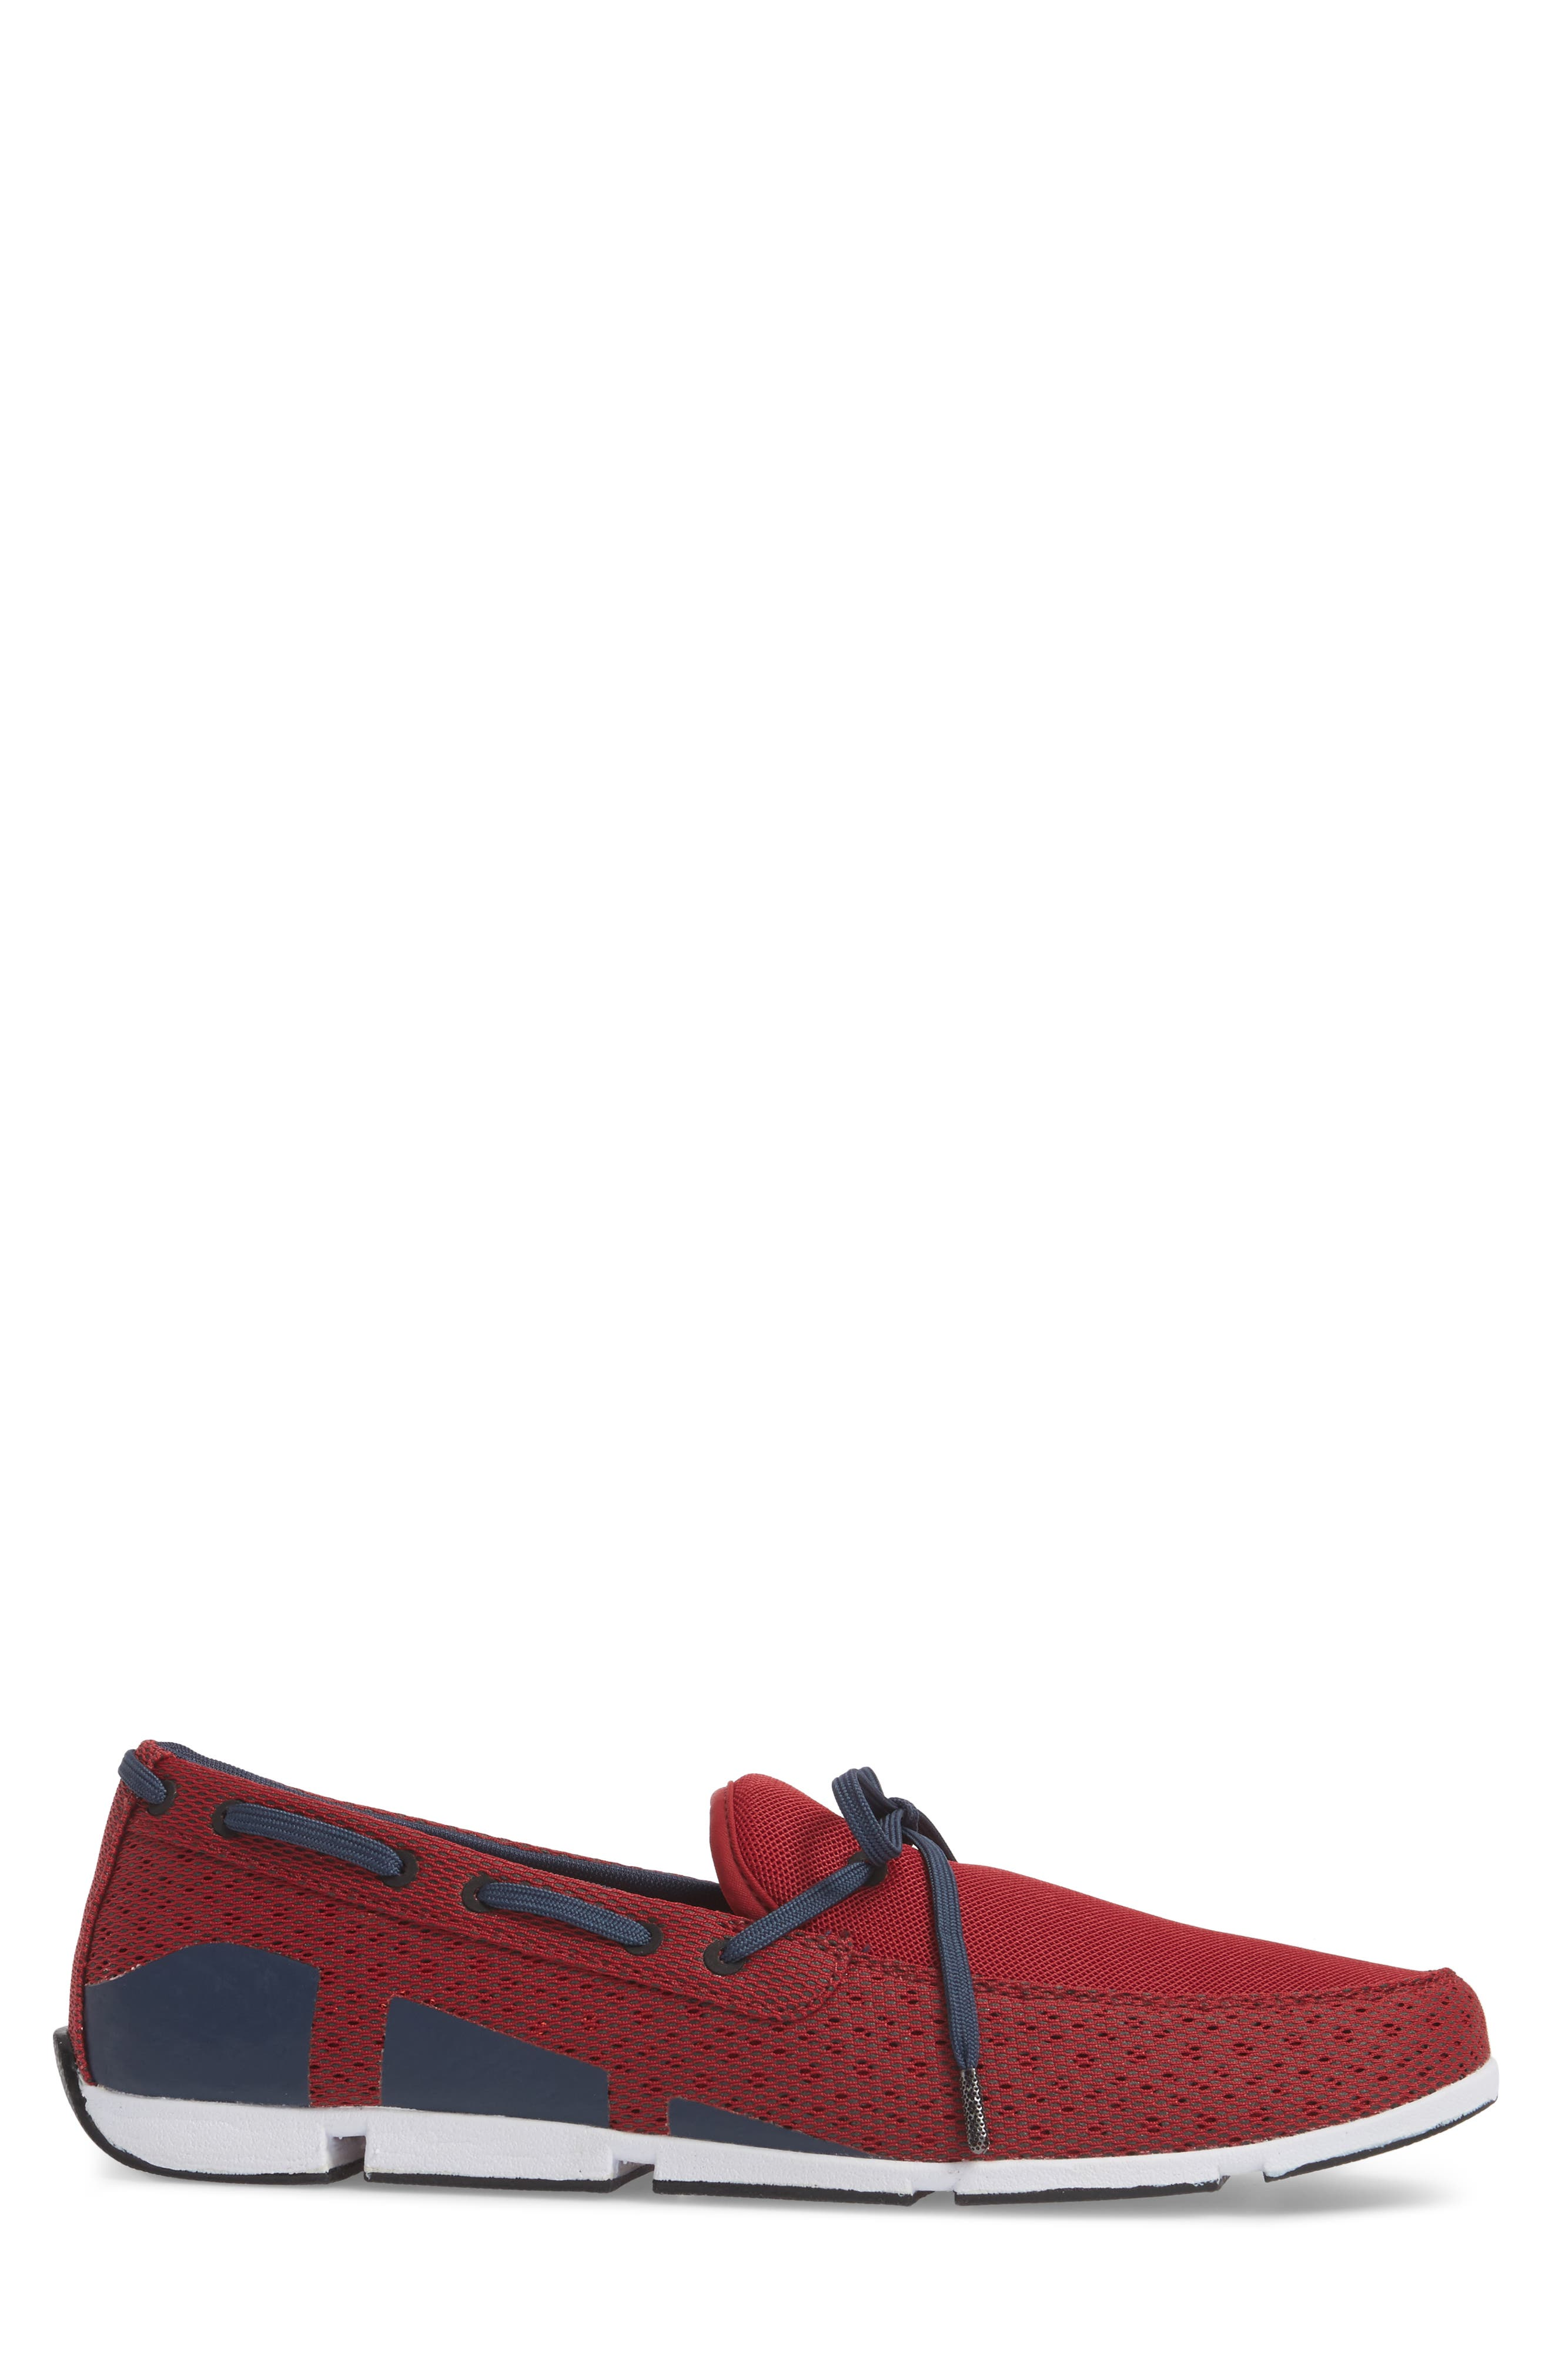 Breeze Loafer,                             Alternate thumbnail 6, color,                             Deep Red/ Navy/ White